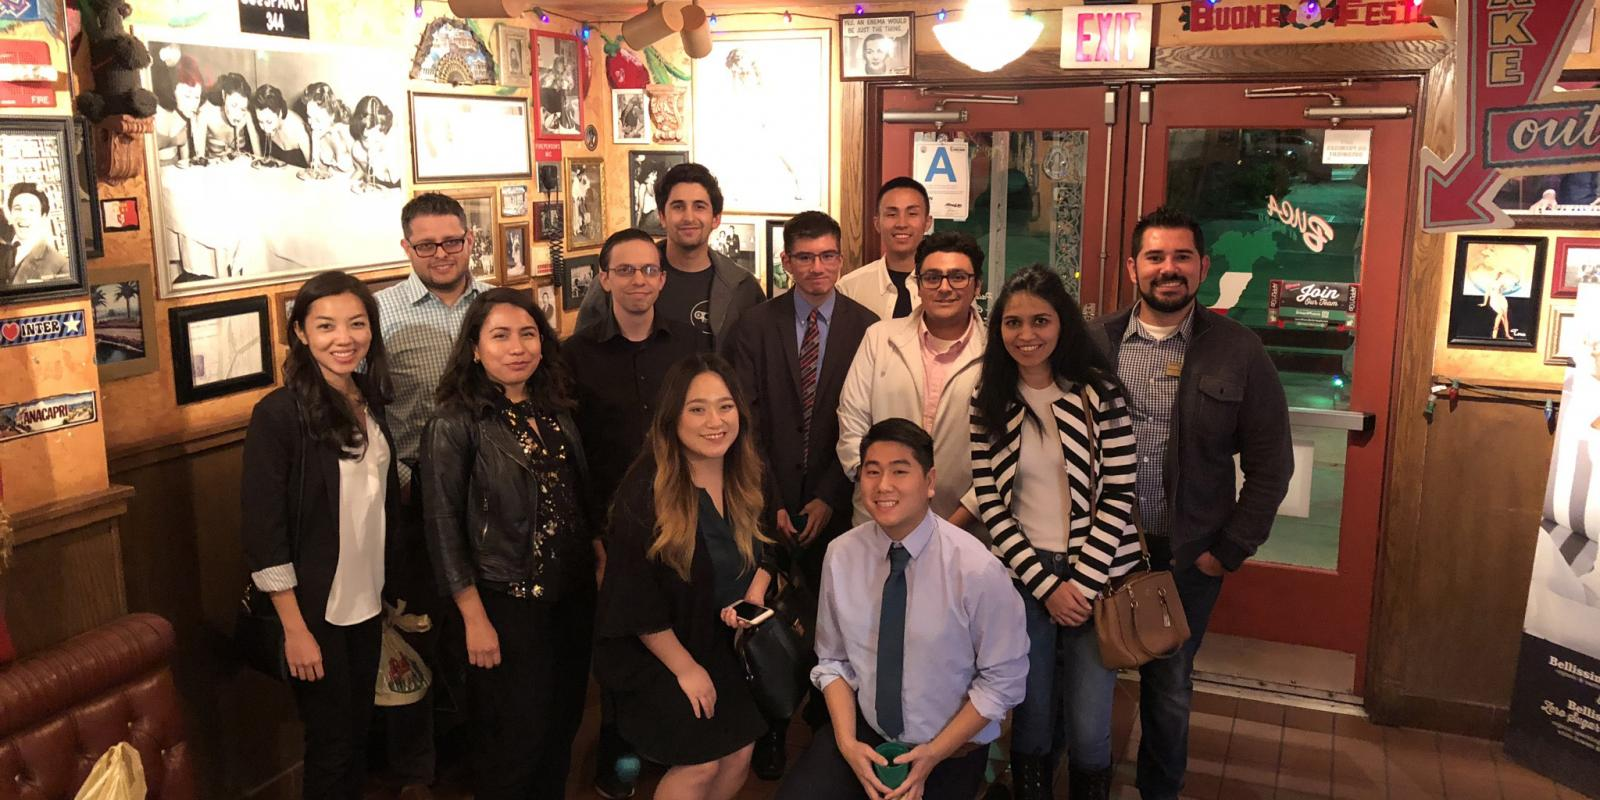 Fall 2017 Dinner with a Planner at Bucca di Beppo in Claremont, CA